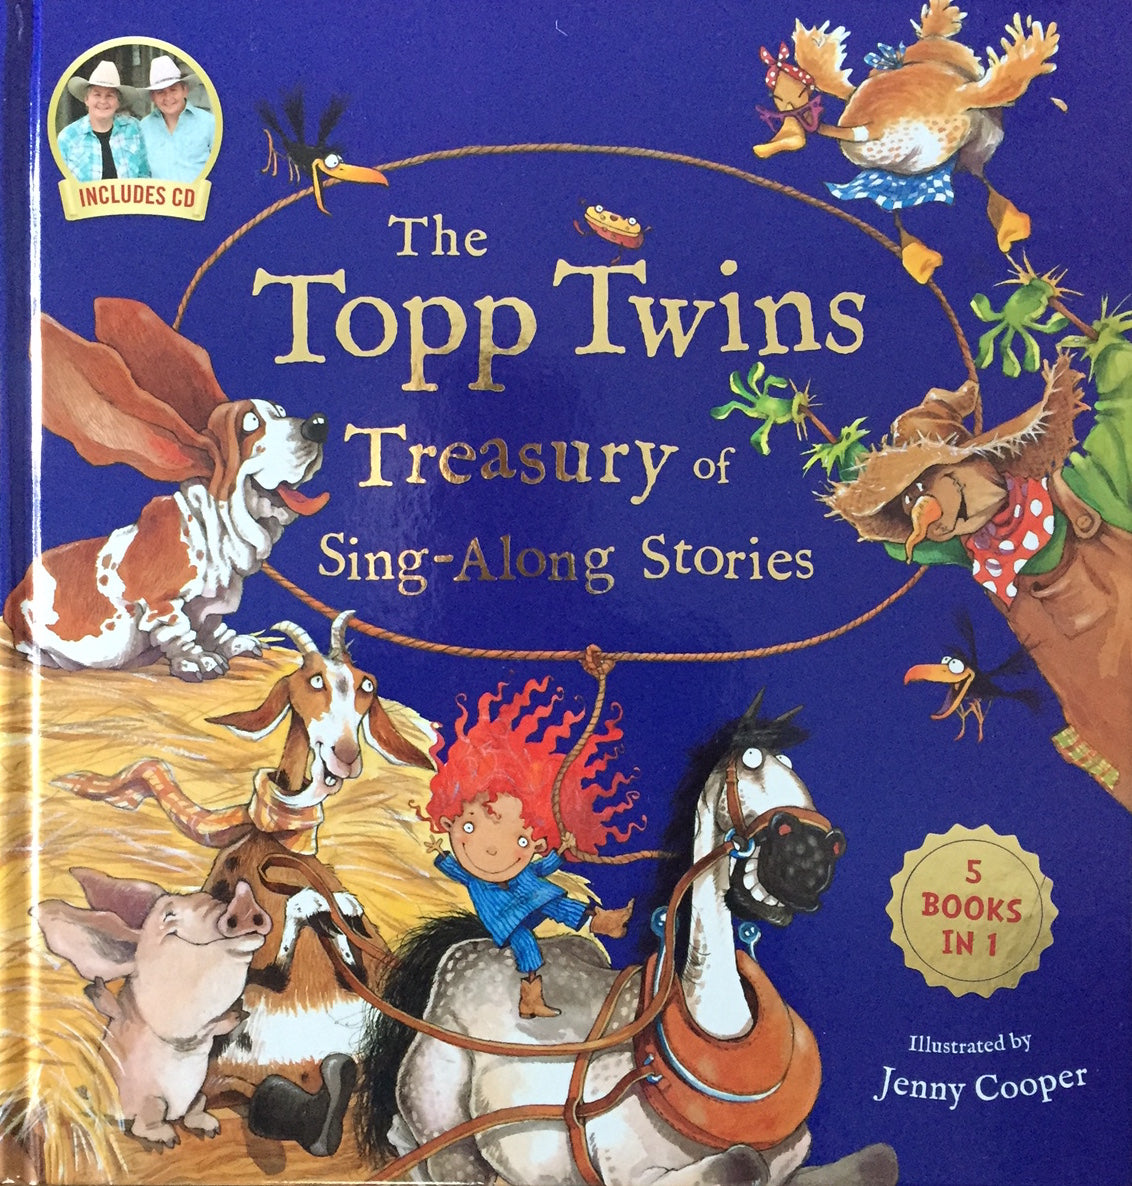 The Treasury Of Sing-Along Stories